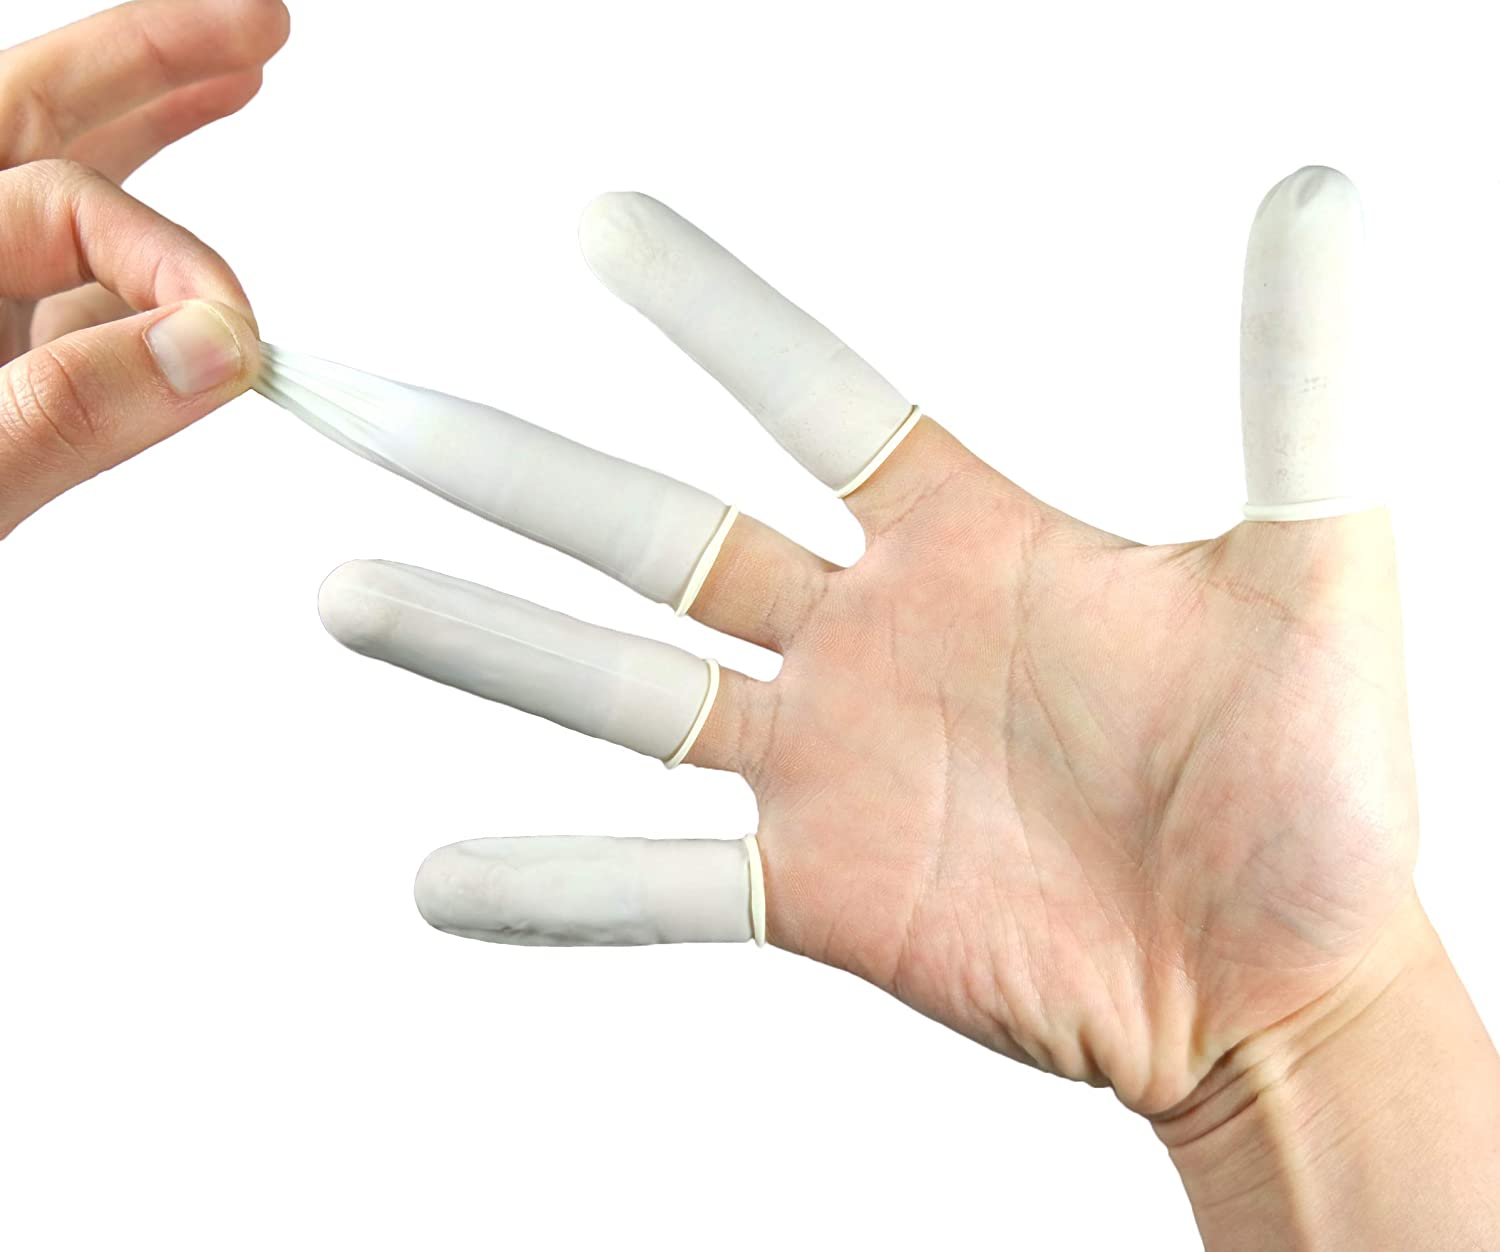 Disposable Latex Finger Cots for Electronic Repair Industrial Anti-Static Powder Free Rubber Fingertip Protective Finger Gloves Manicures Painting Topical Medical Application Handmade Apply